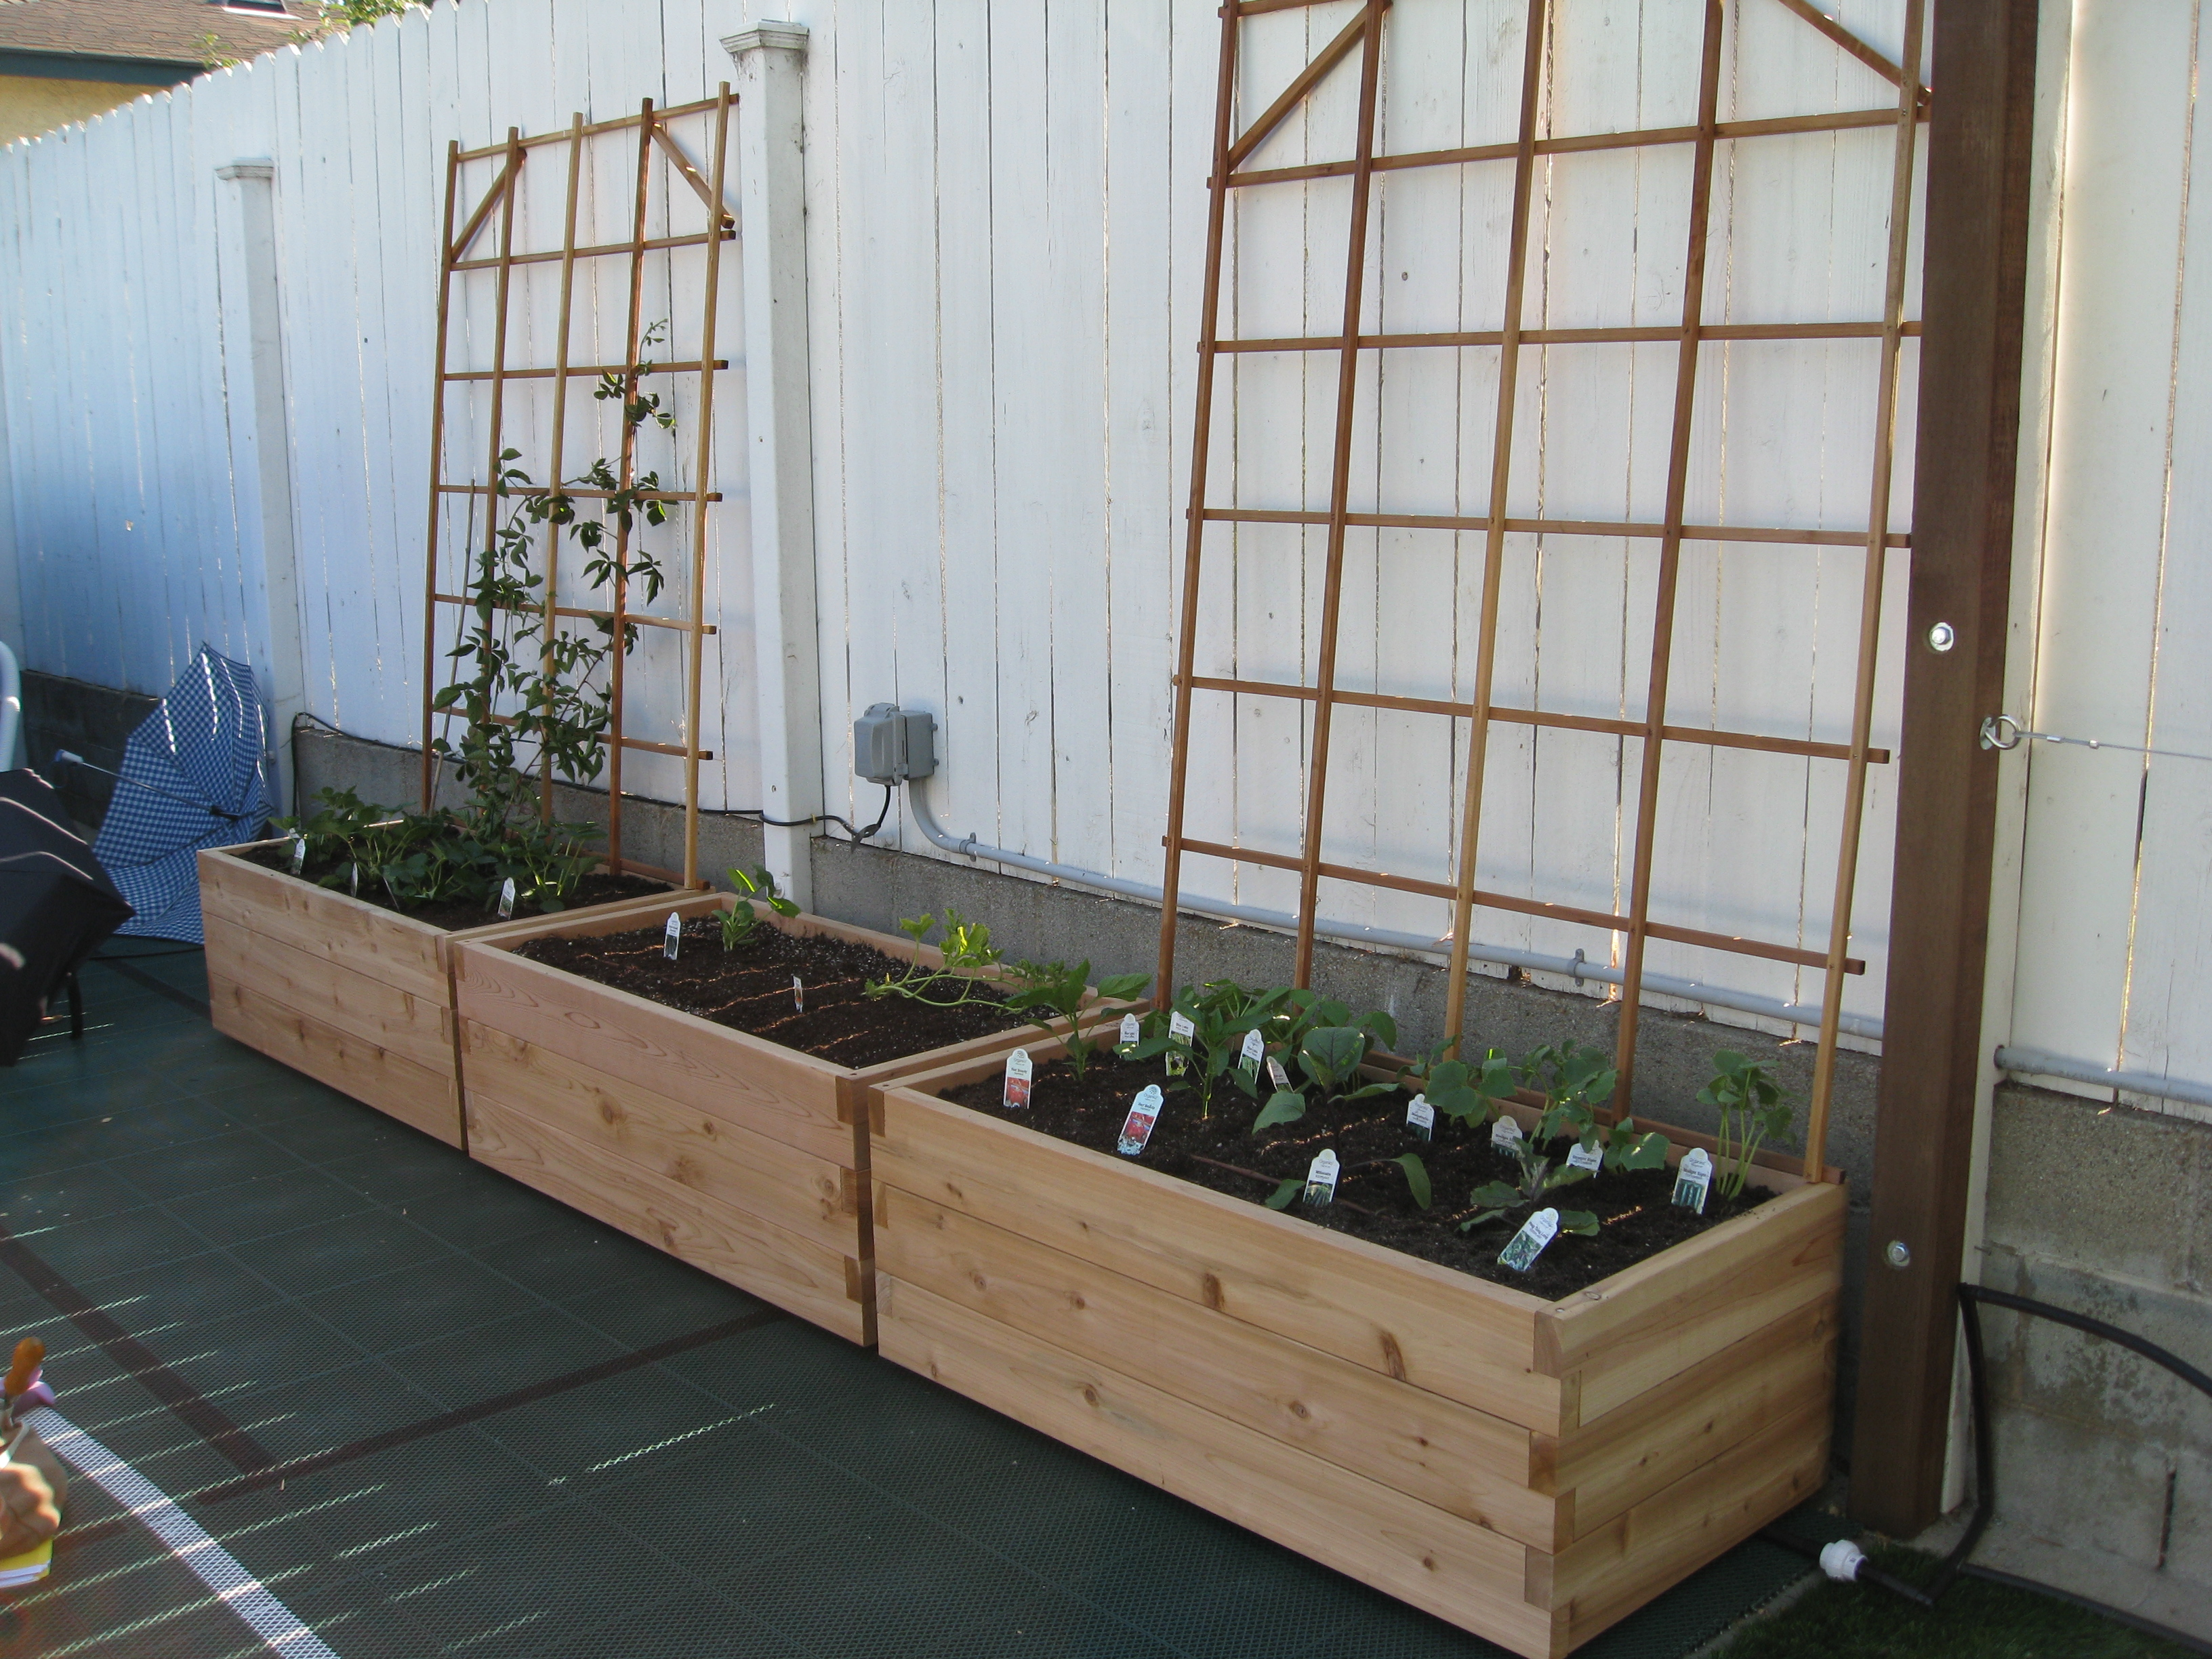 The new garden will provide home-school lessons for the kids and food for the table.